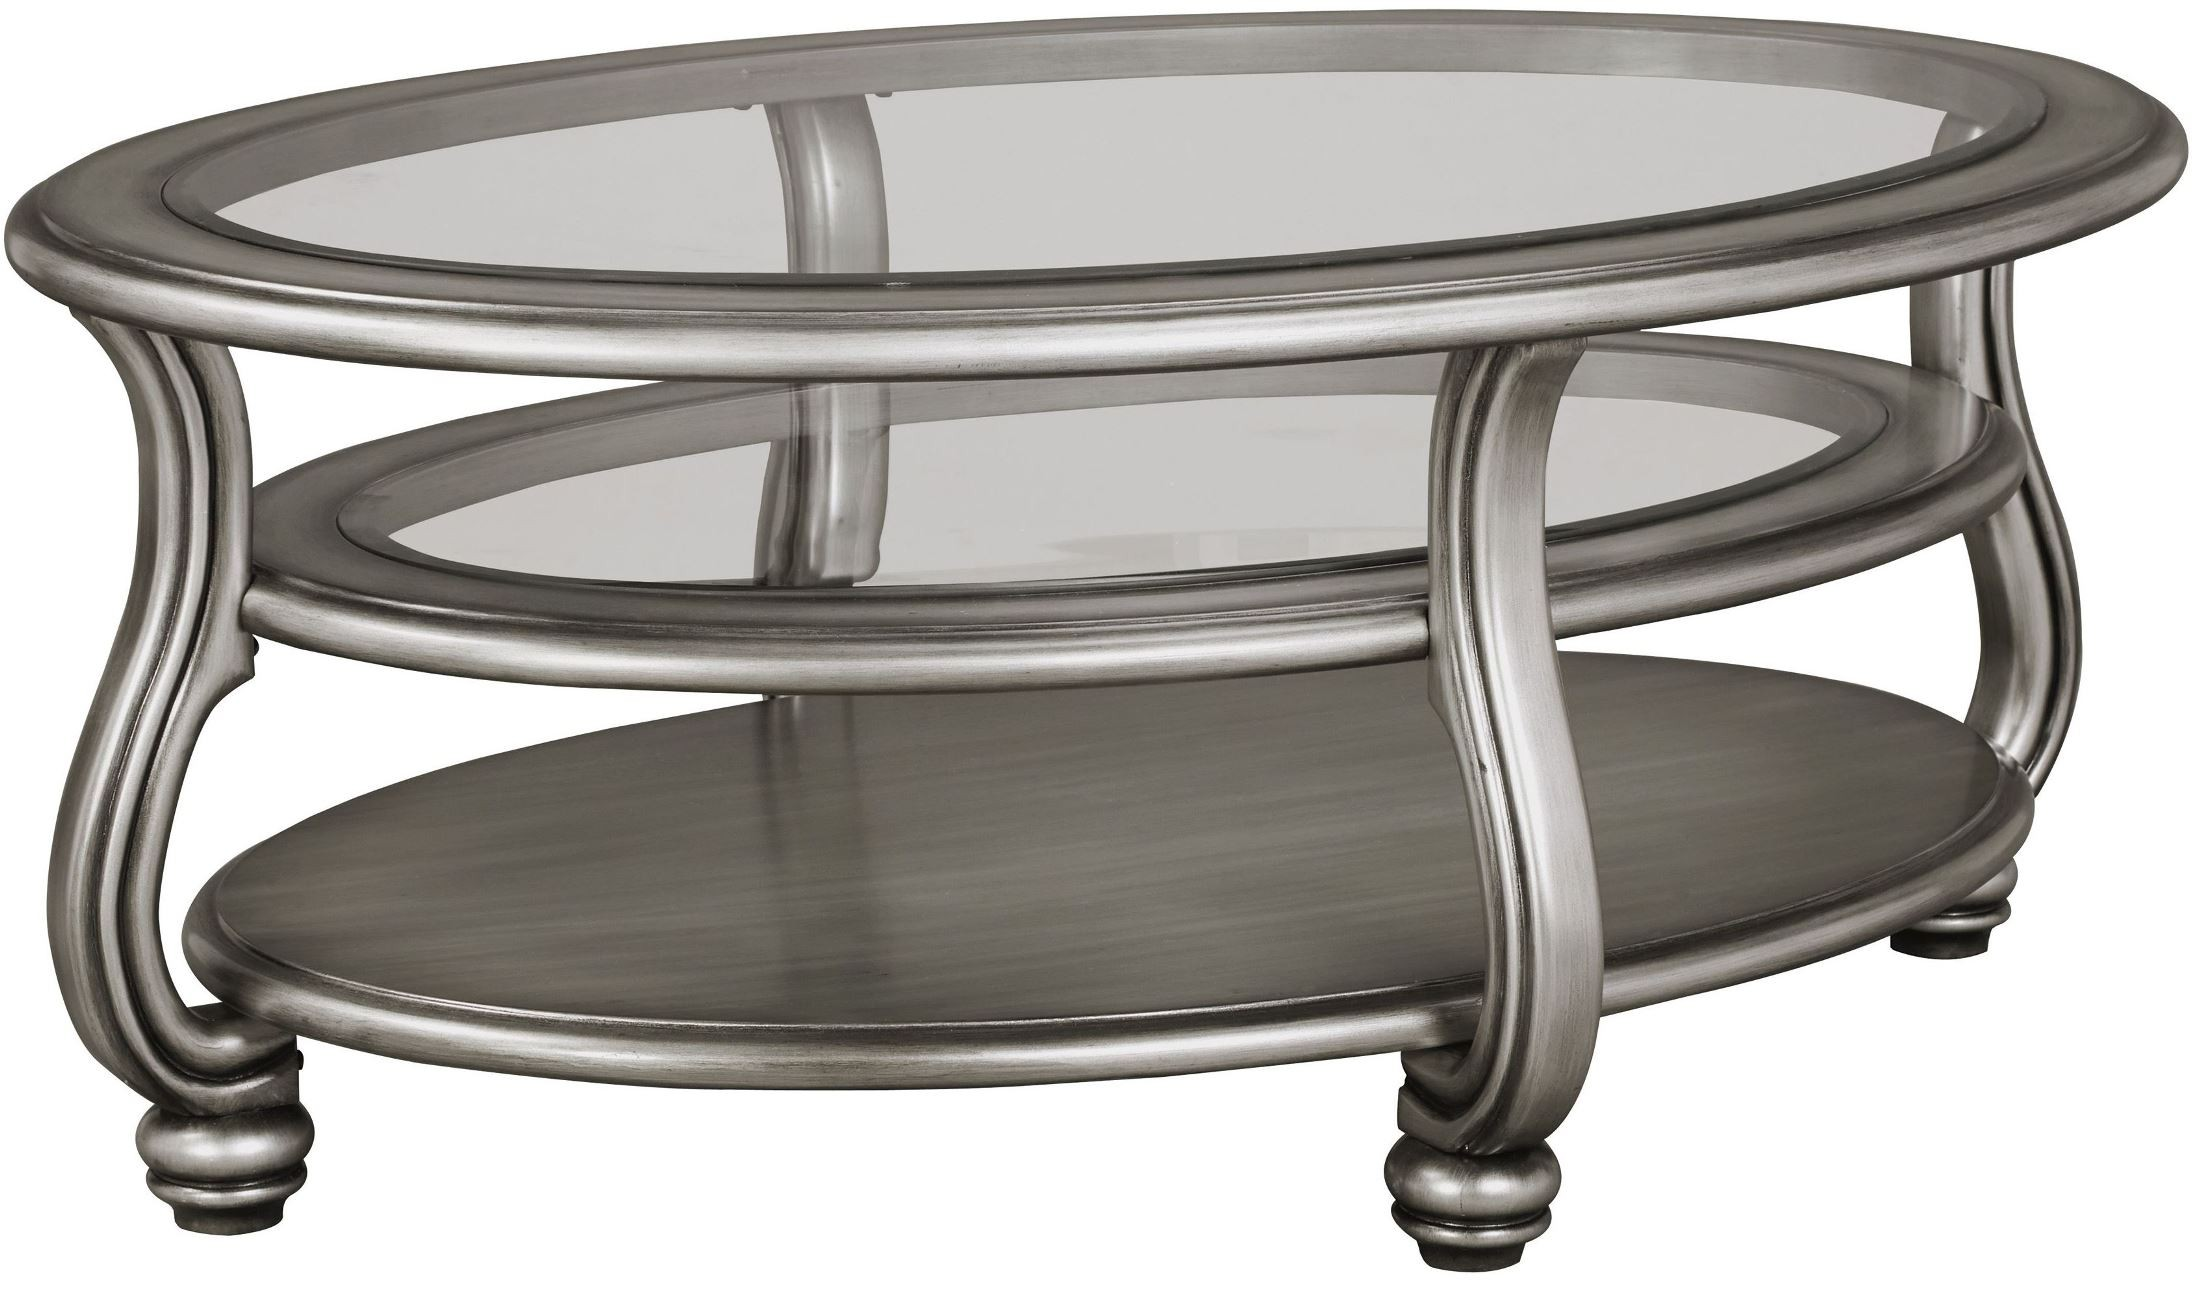 Coralayne Silver Oval Cocktail Table From Ashley T820 0 Coleman Furniture